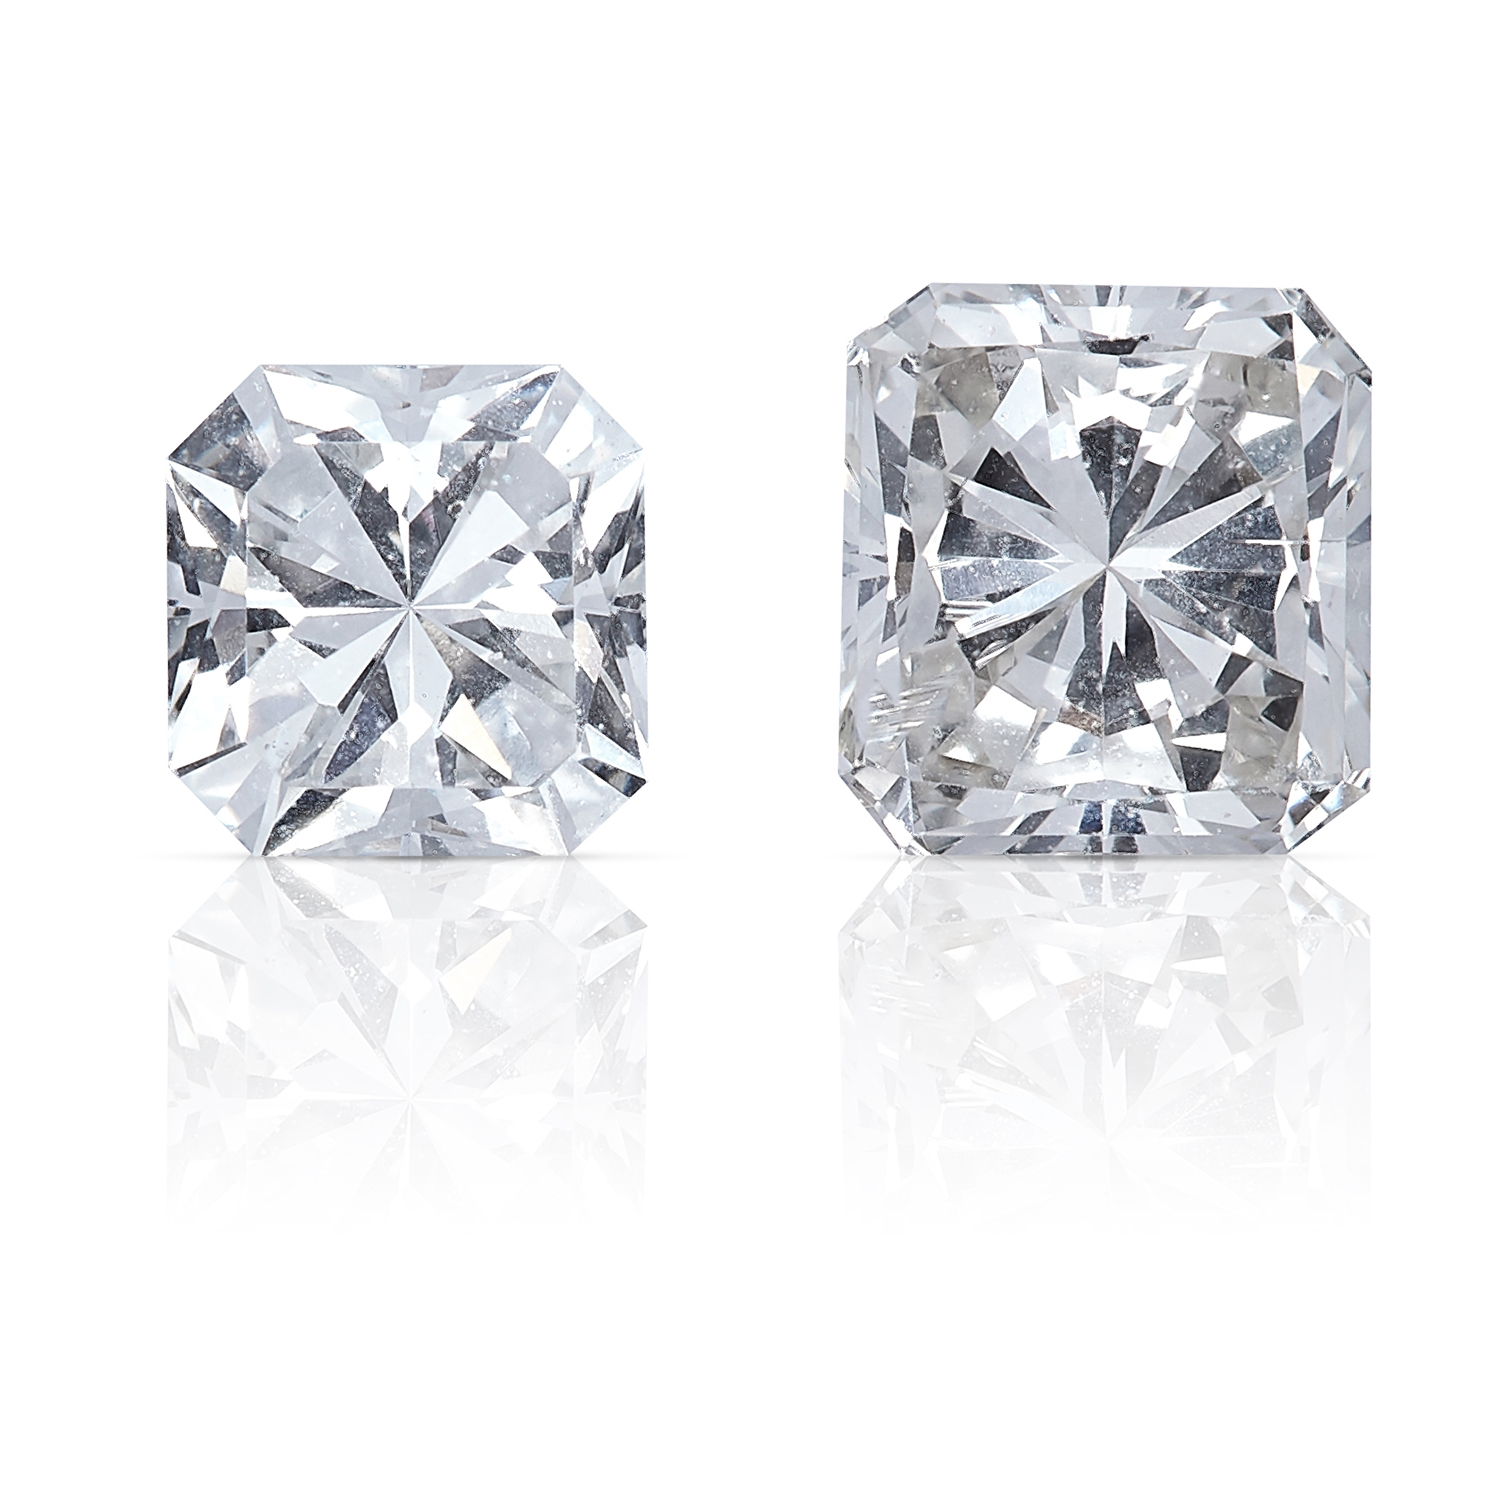 TWO SQUARE MODIFIED BRILLIANT CUT DIAMONDS, TOTALLING 0.71cts, UNMOUNTED.